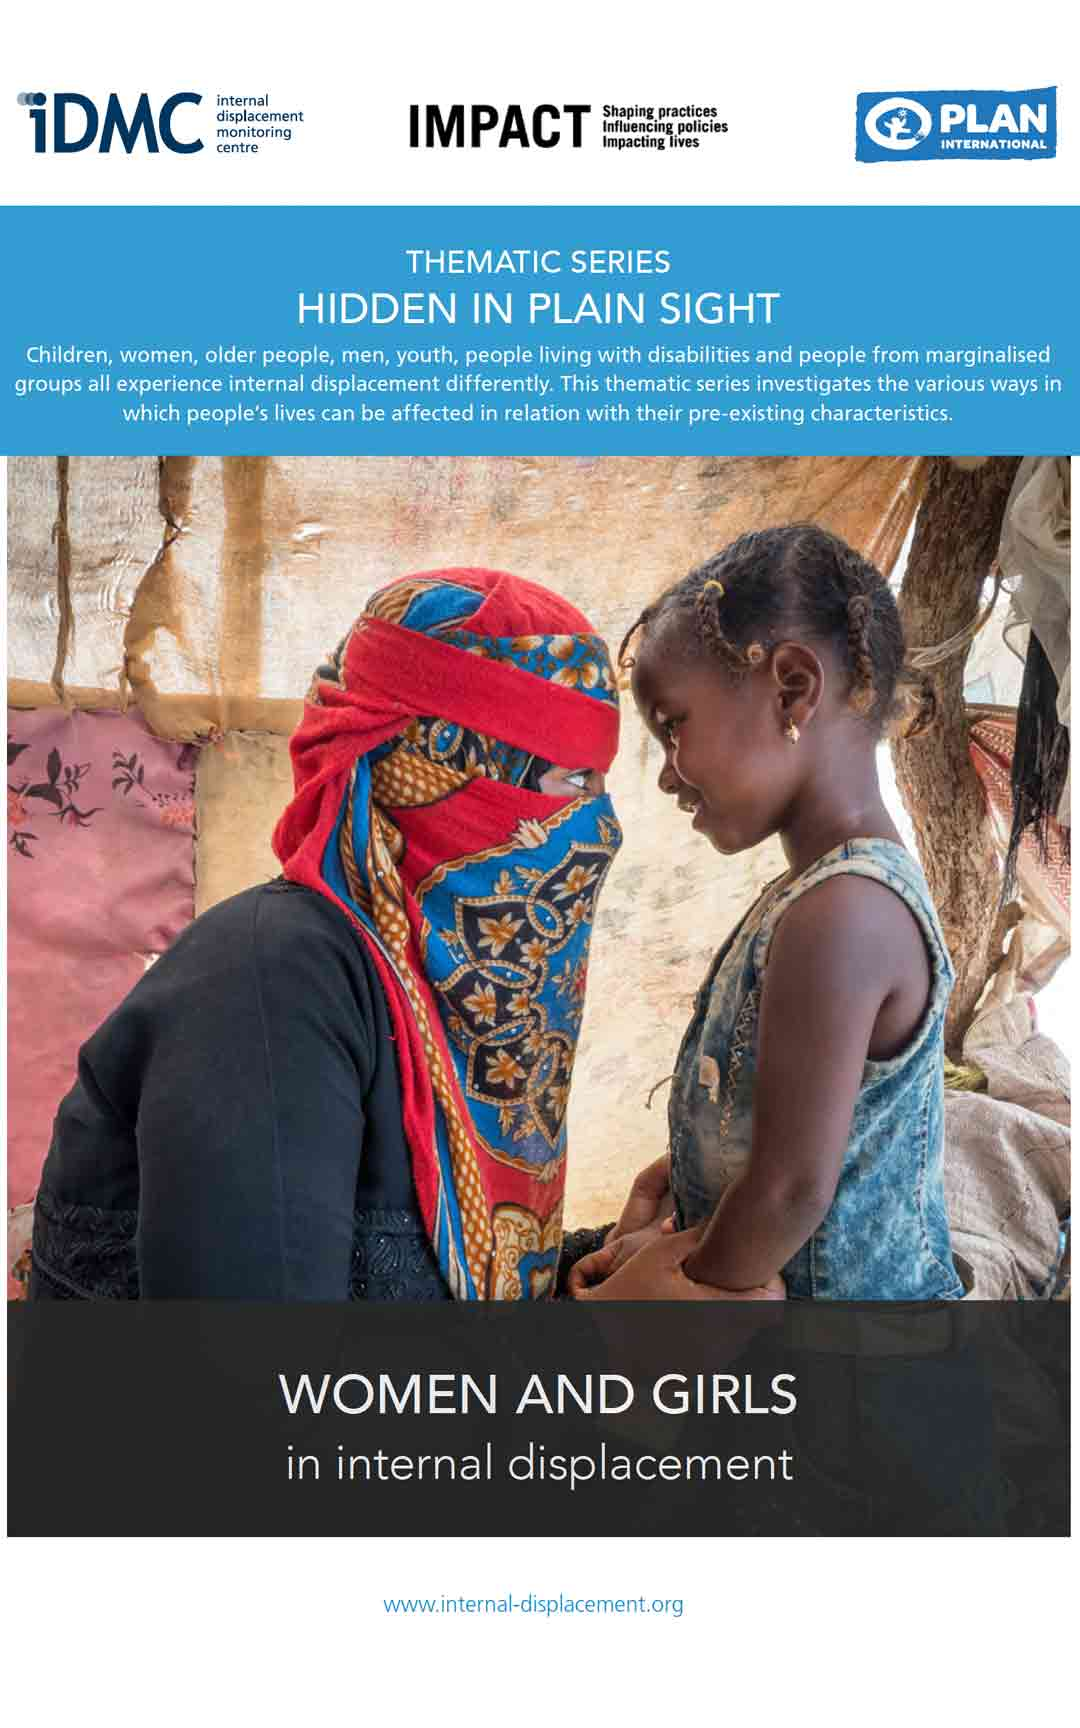 Women and girls in internal displacement